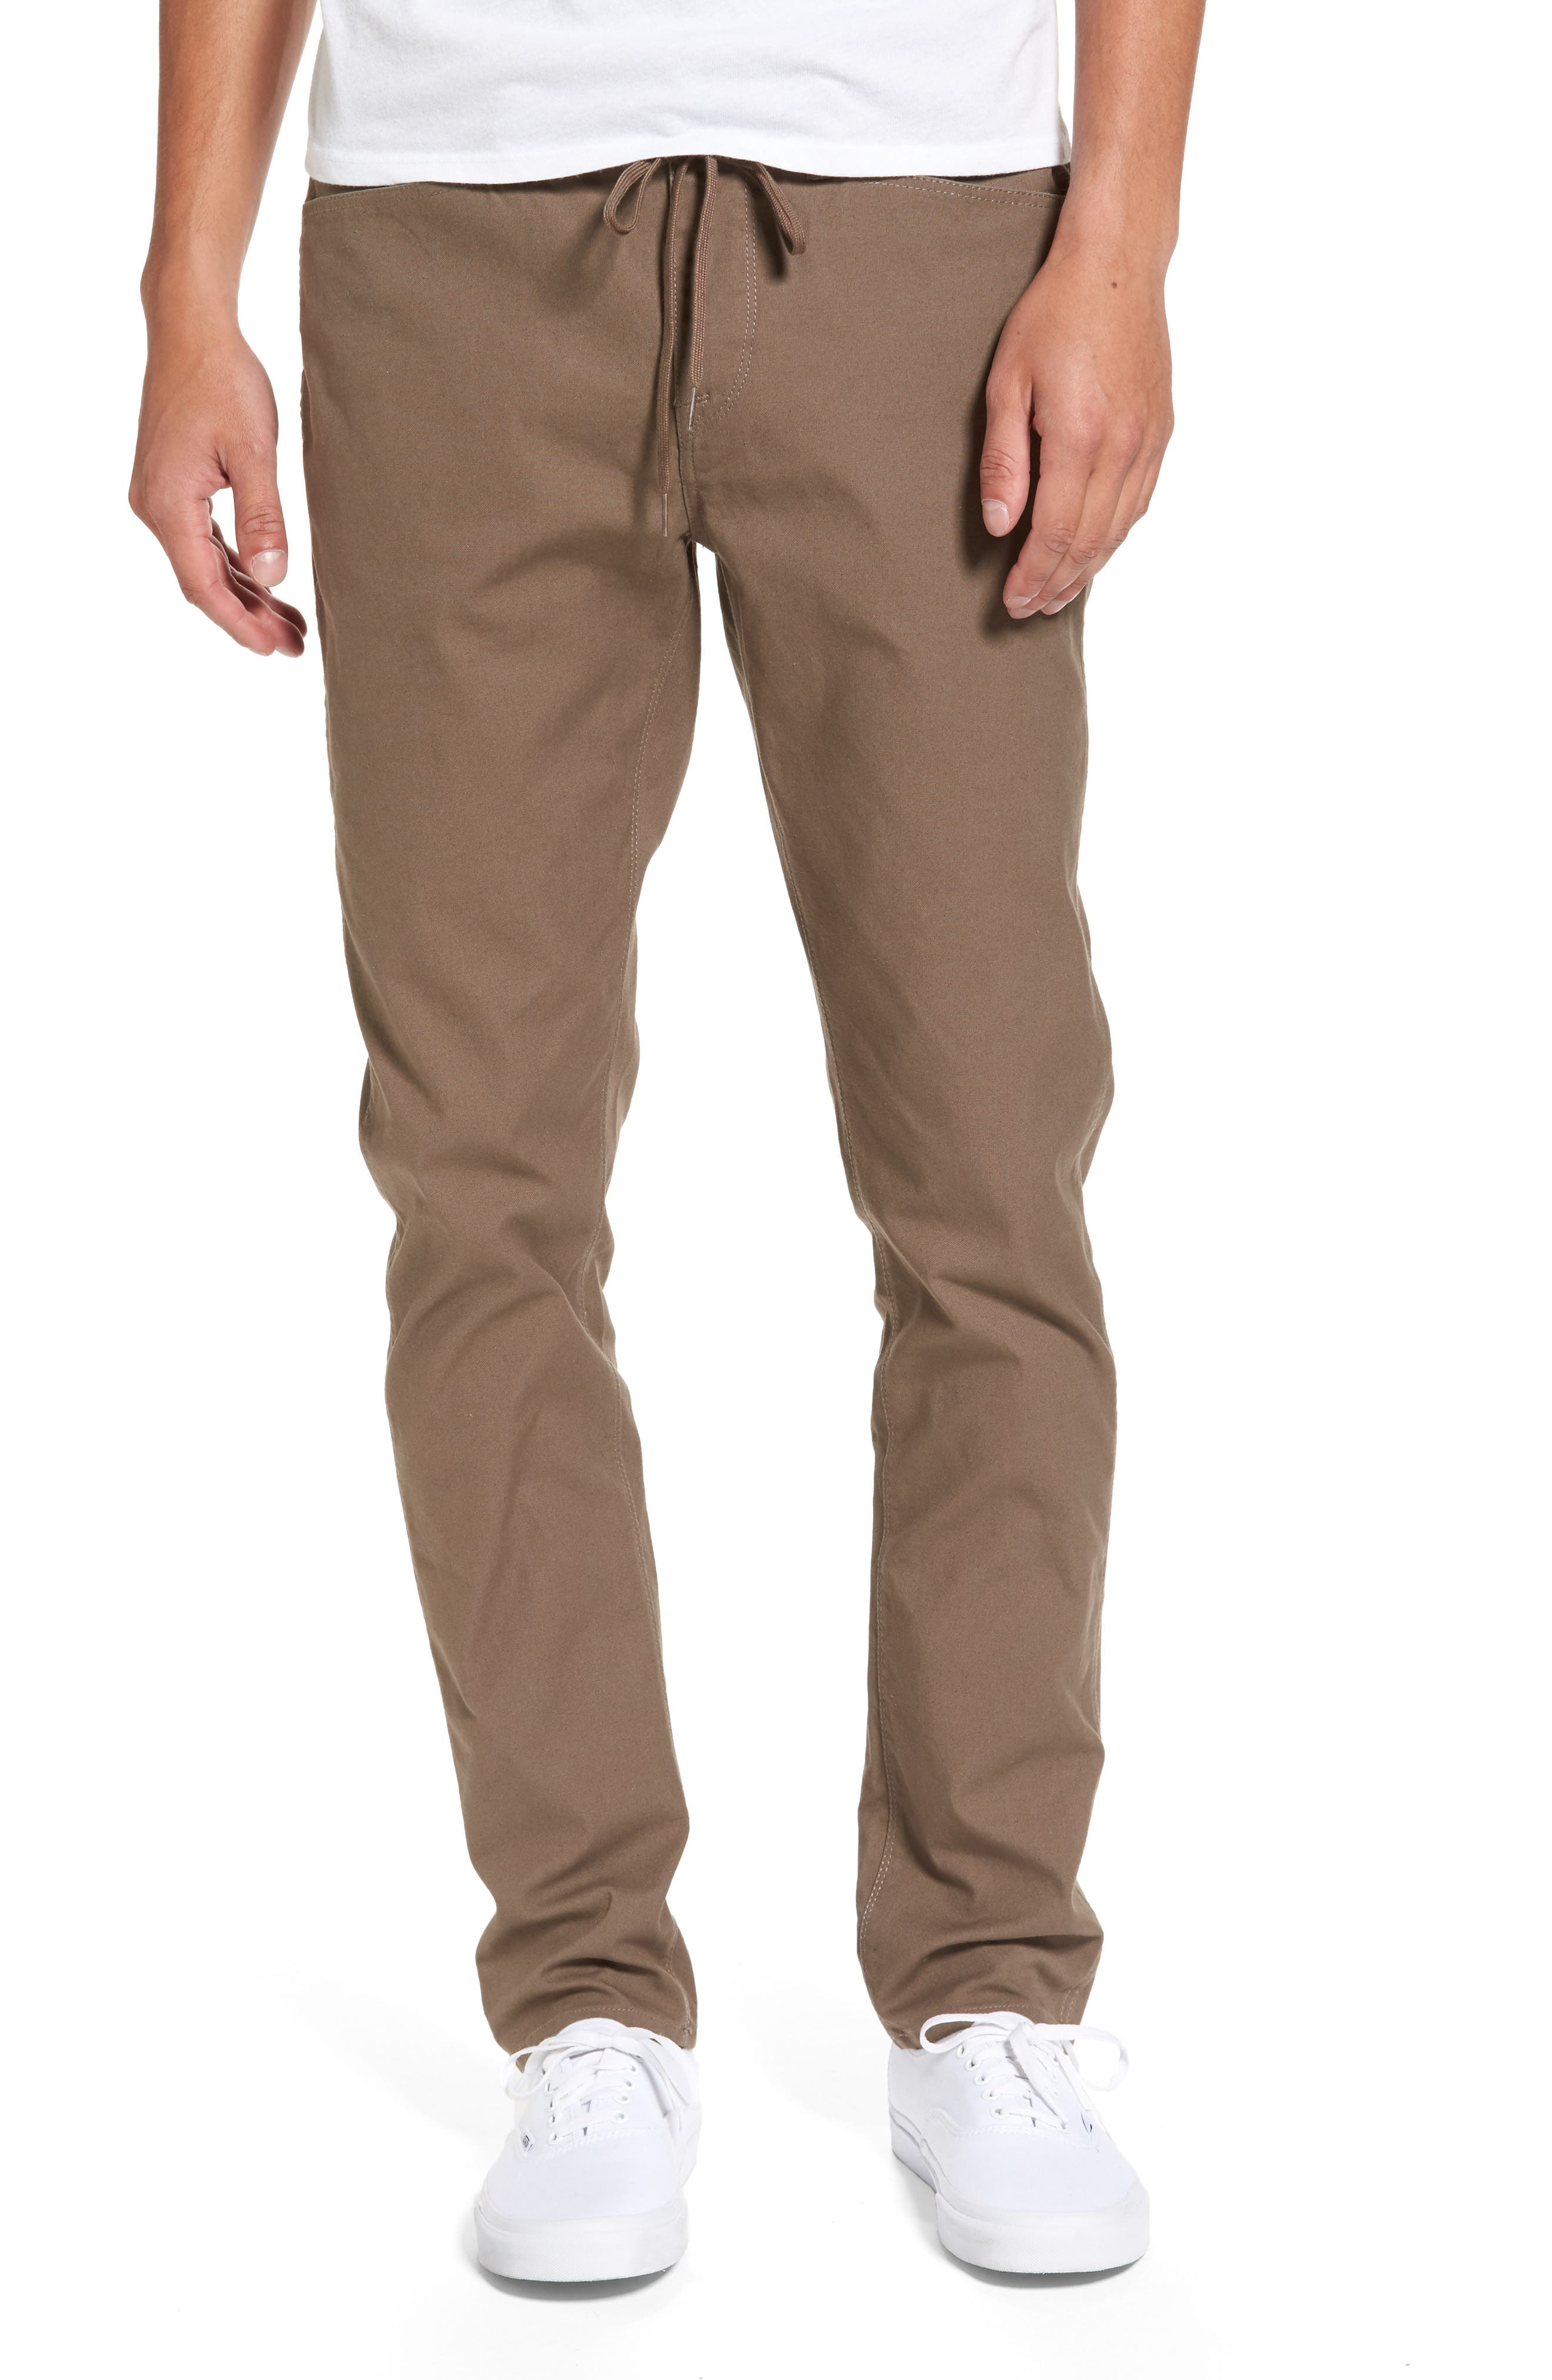 'VSM Gritter' Tapered Chinos,                         Main,                         color, Beige